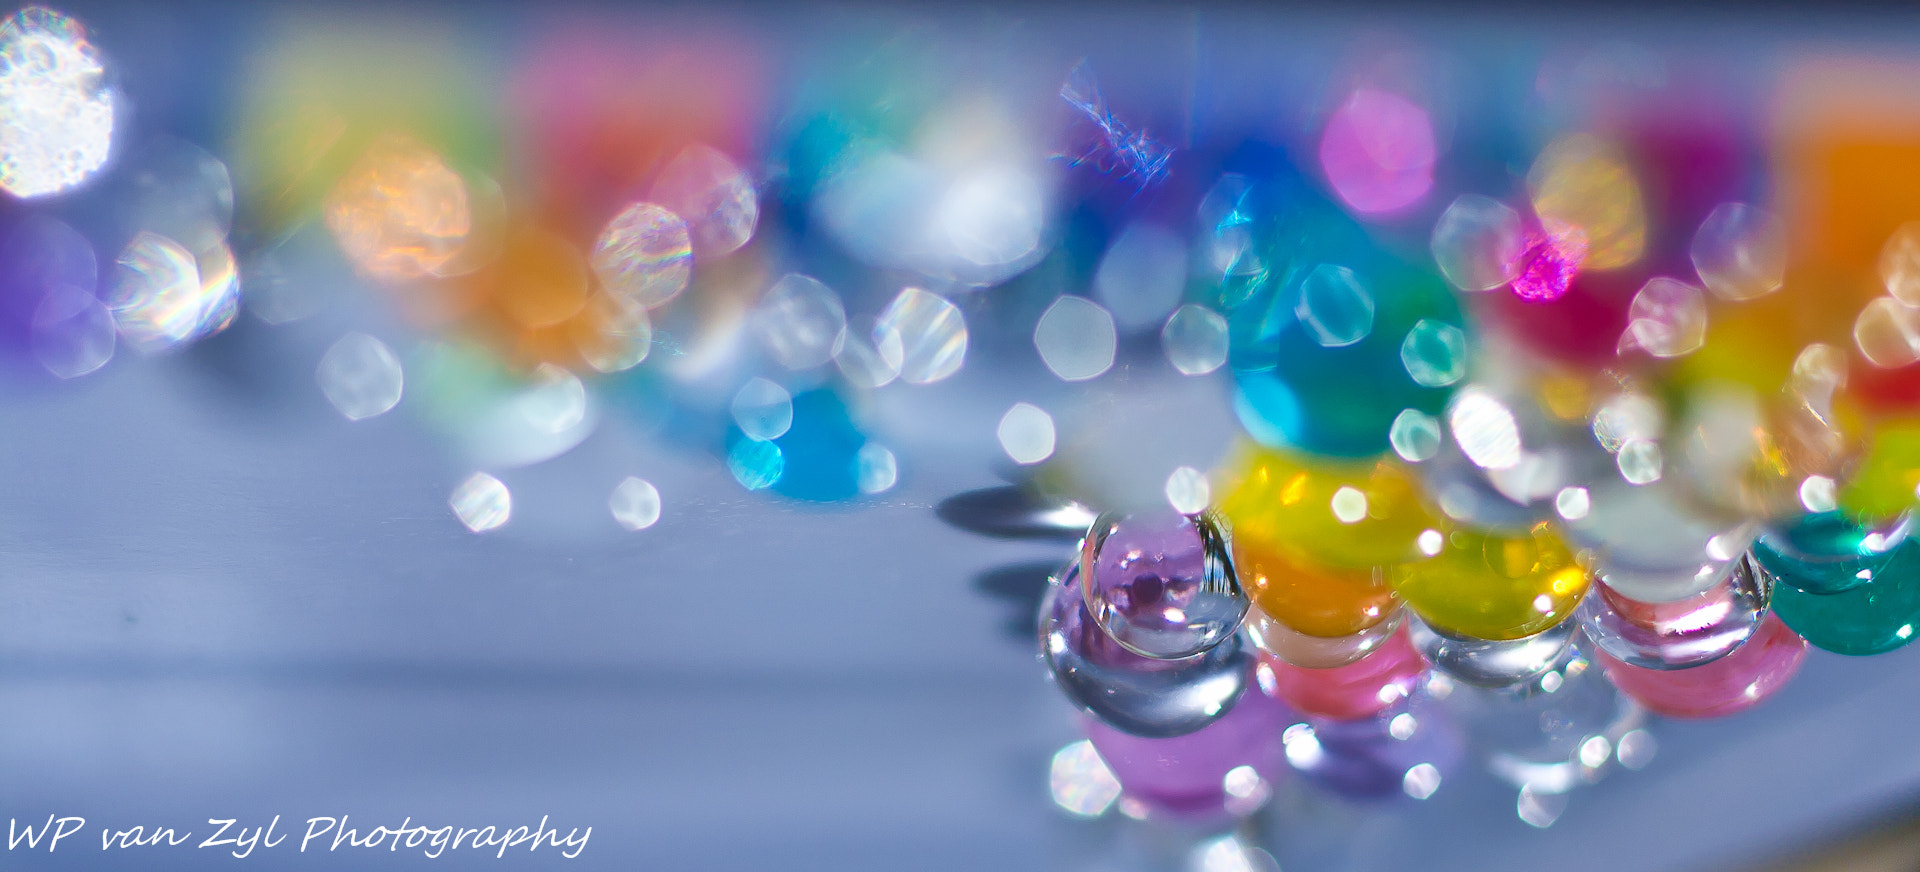 Photograph Colour by Wendy Van Zyl on 500px